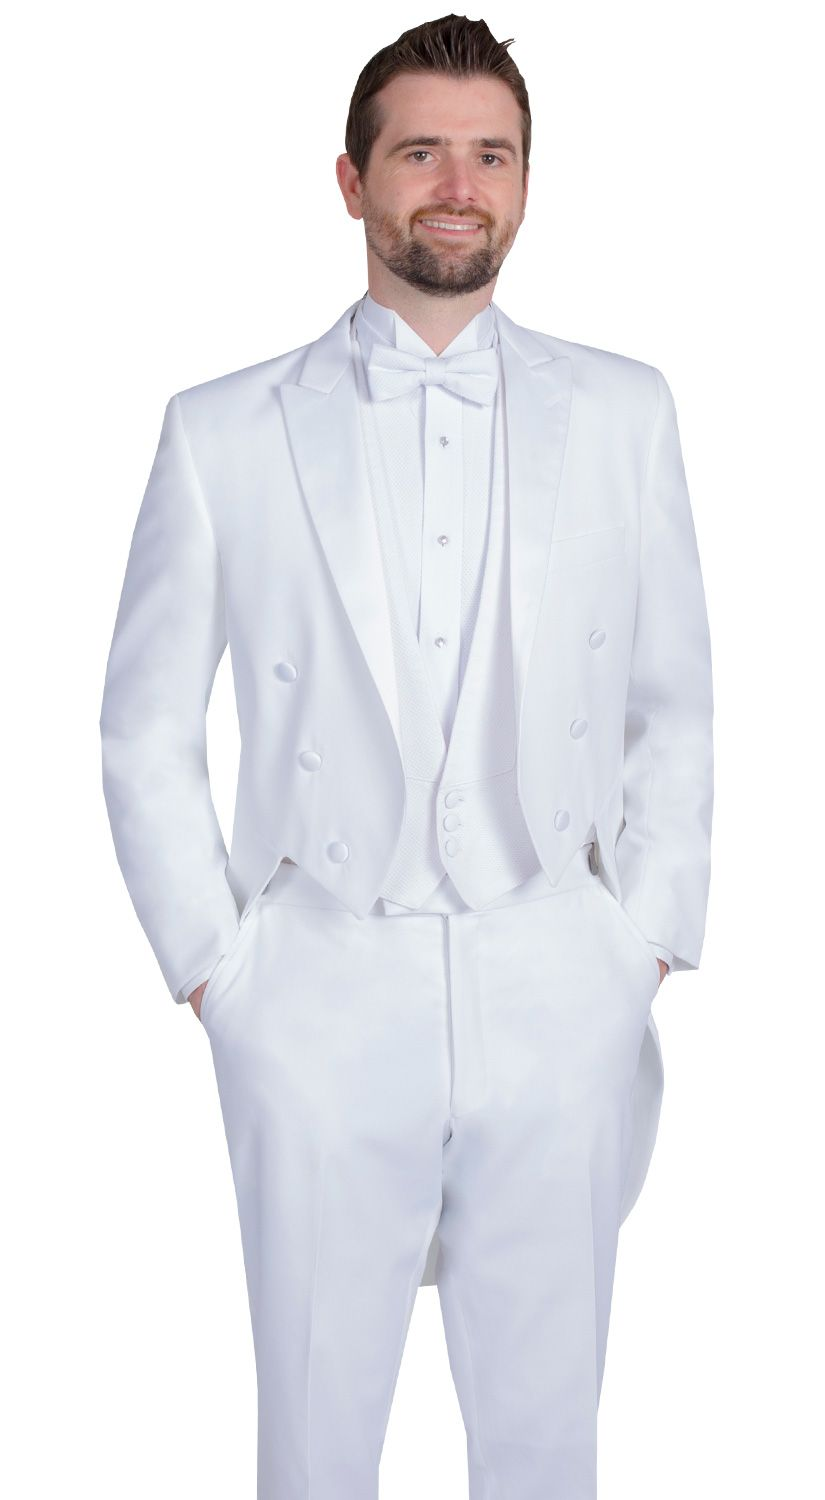 3211f093c0c White Tail Coat by After Six, Fit: Classic, Fabric: Polyester, Lapel: Notch,  Buttons: 6, Sizes available: Boys' 3 - Men's 60L